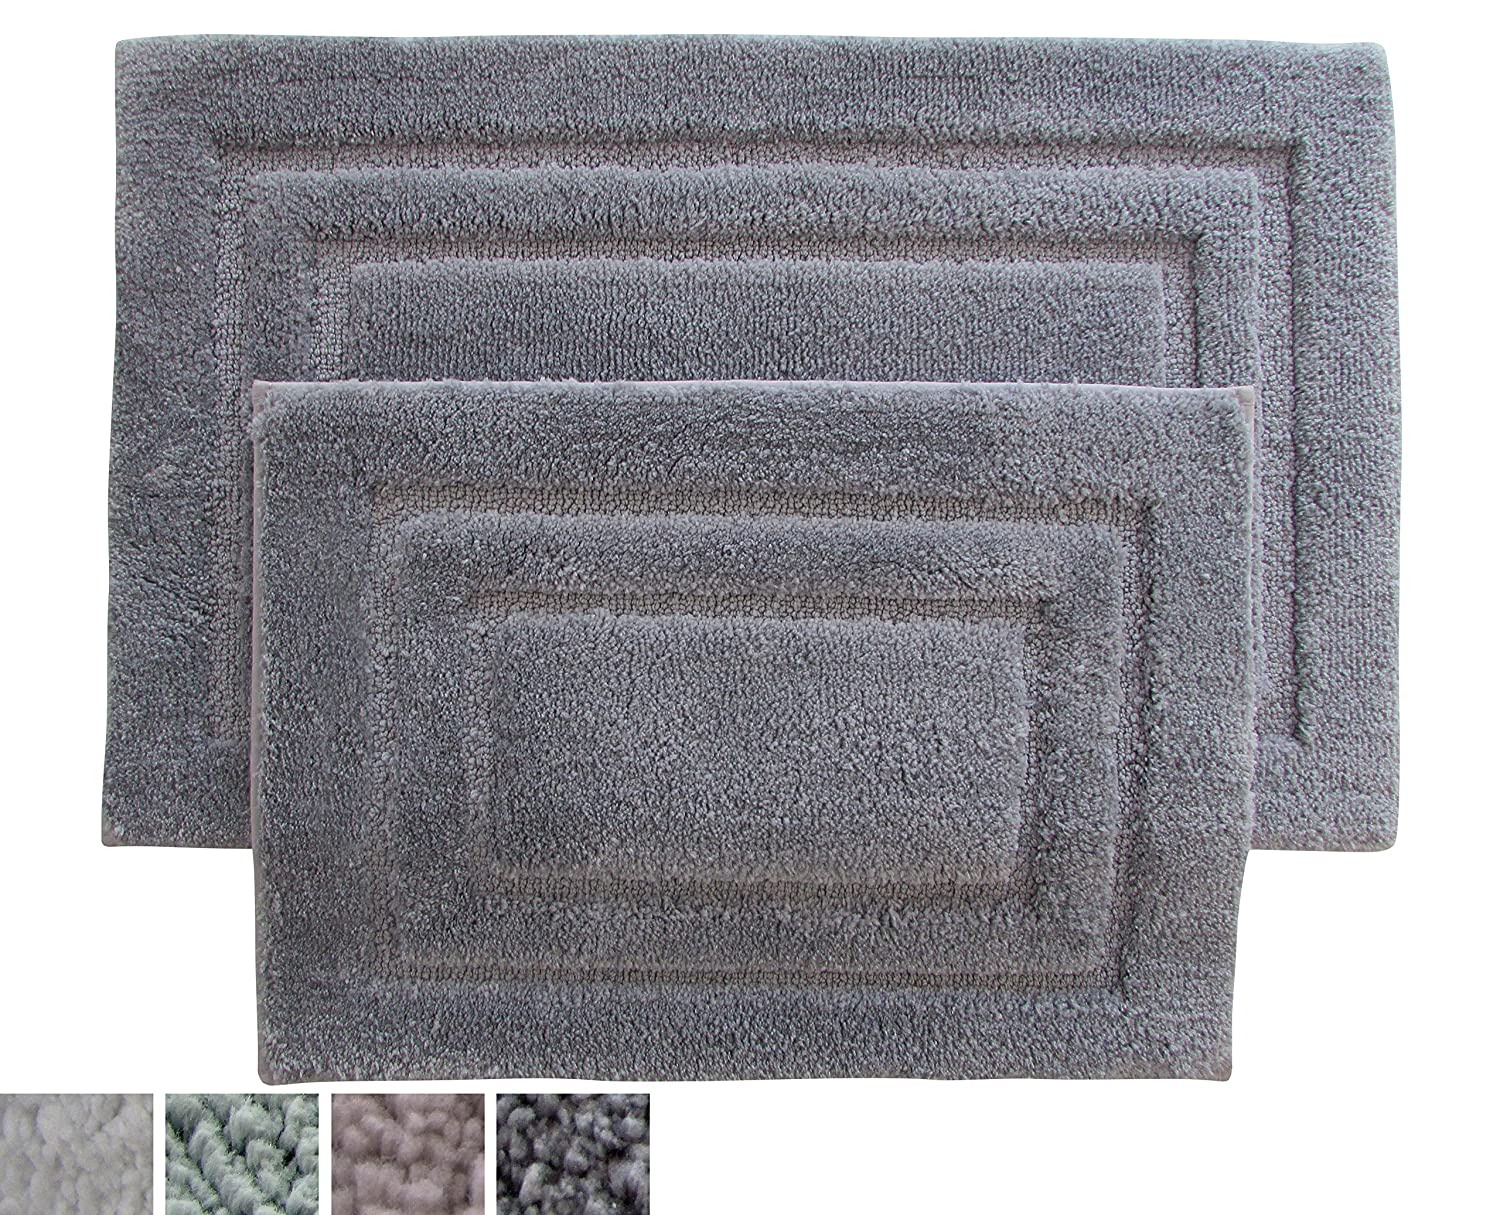 Shop Amazoncom Bath Rugs - Black and white tweed bath rug for bathroom decorating ideas